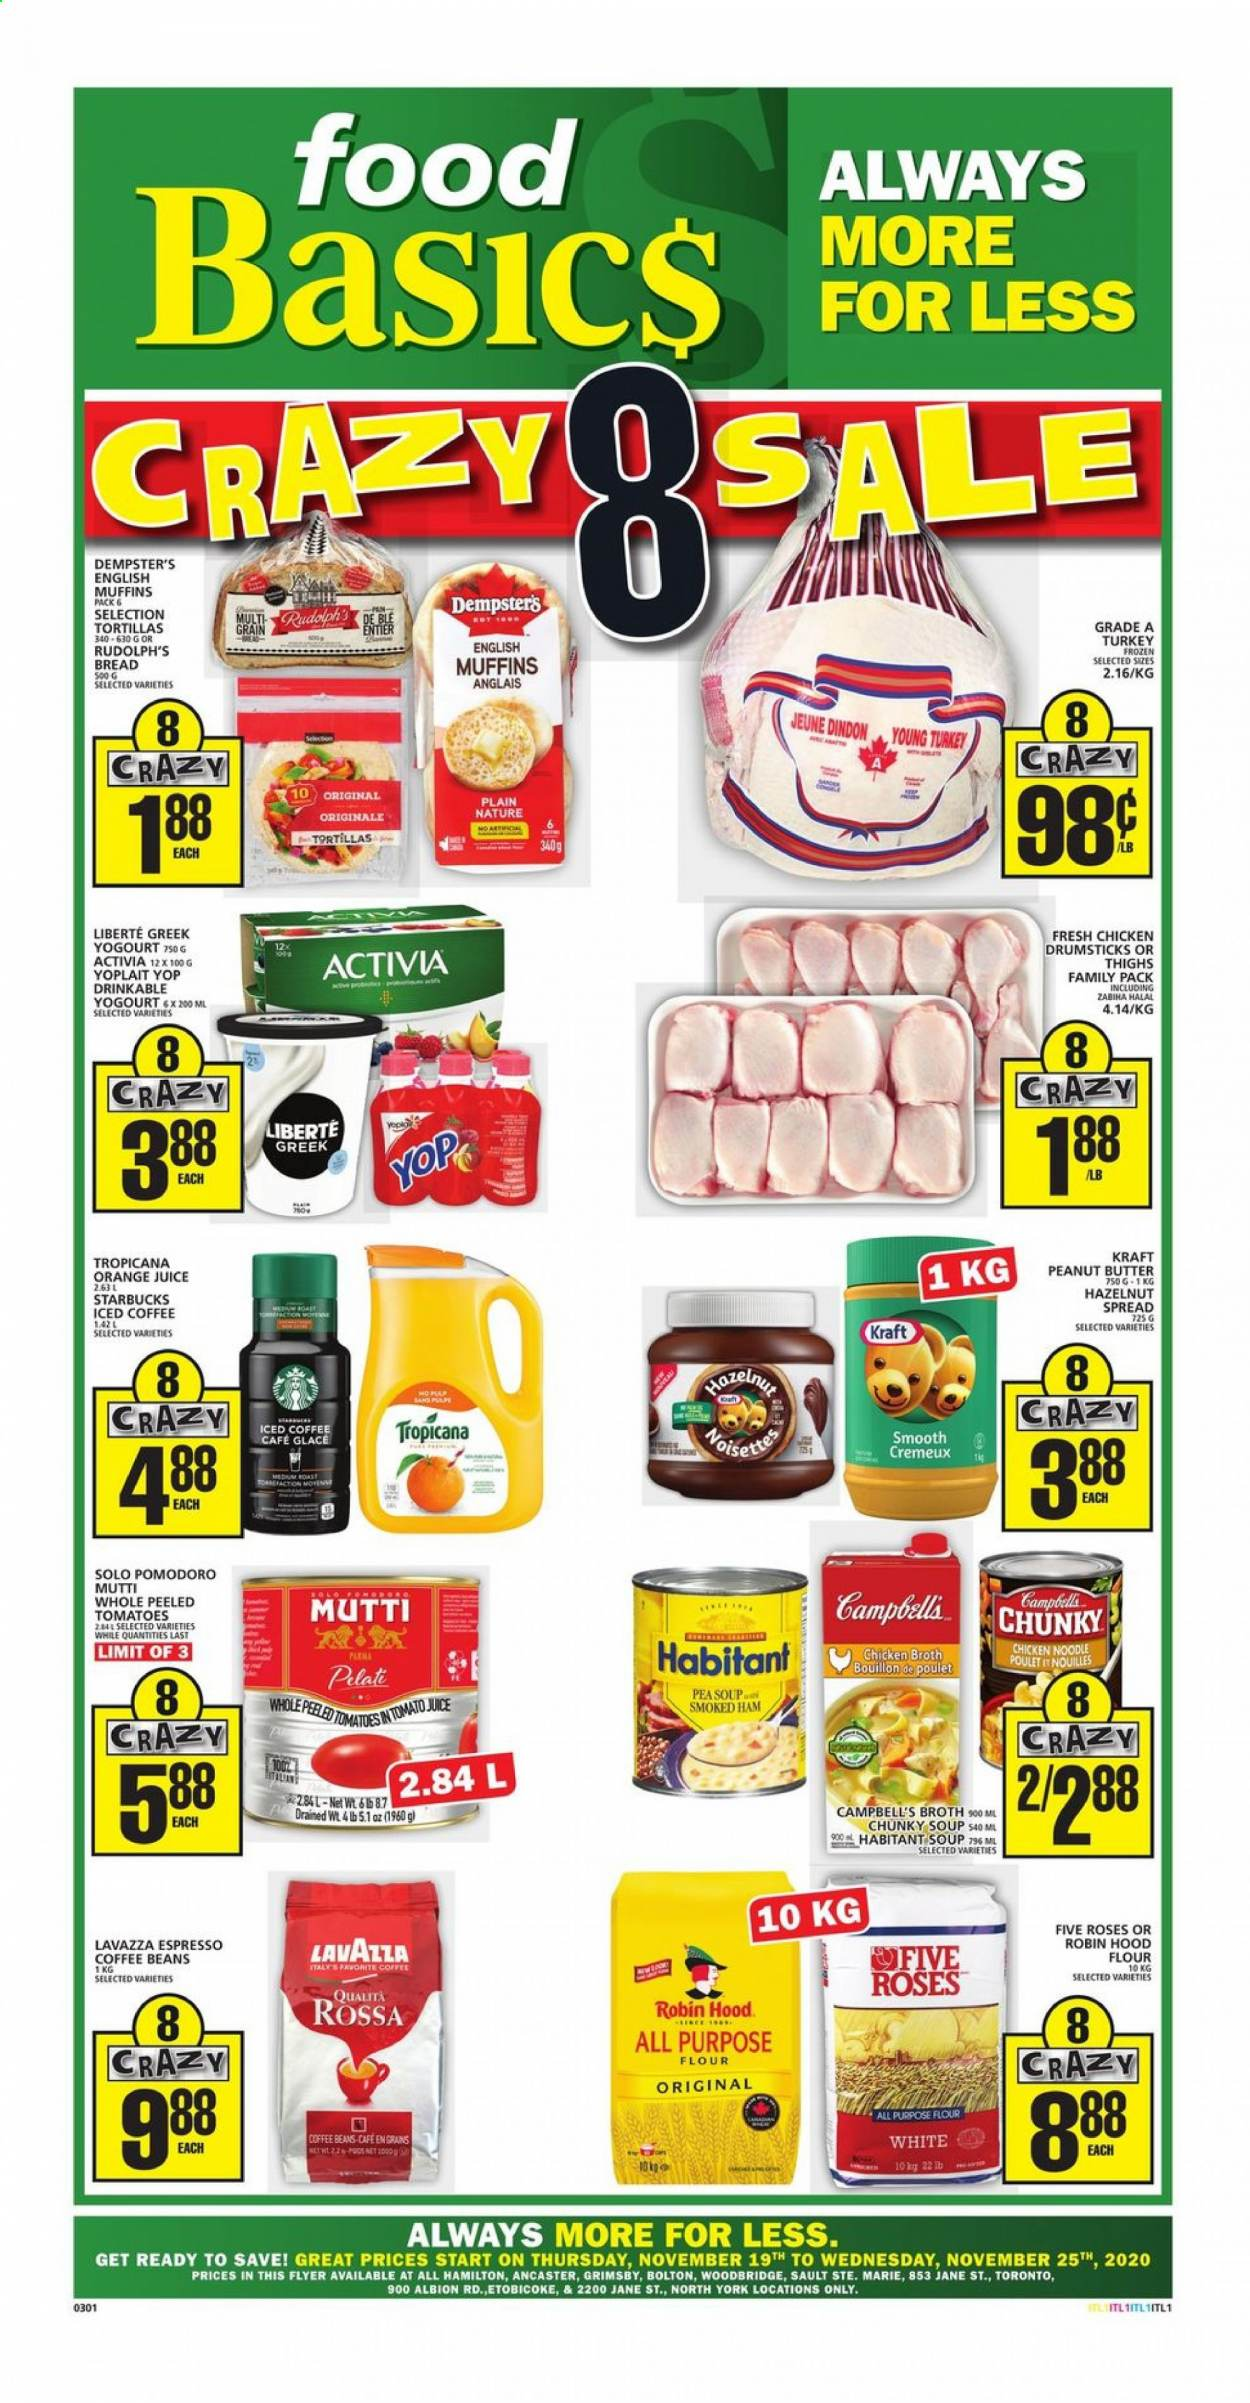 Food Basics Flyer - November 19, 2020 - November 25, 2020 - Sales products - all purpose flour, always, beans, bouillon, bread, butter, campbell's, english muffins, flour, frozen, muffins, Starbucks, tomato juice, tomatoes, tortillas, turkey, ham, hoodie, chicken, chicken broth, chicken drumsticks, peanut butter, peanuts, noodle, orange juice, juice, smoked ham, soup, roses, smooth, poulet, café, activia, blé, glace, tortilla, nouilles, orange, lavazza, tropicana, family pack, coffee beans, iced coffee, tomato. Page 1.